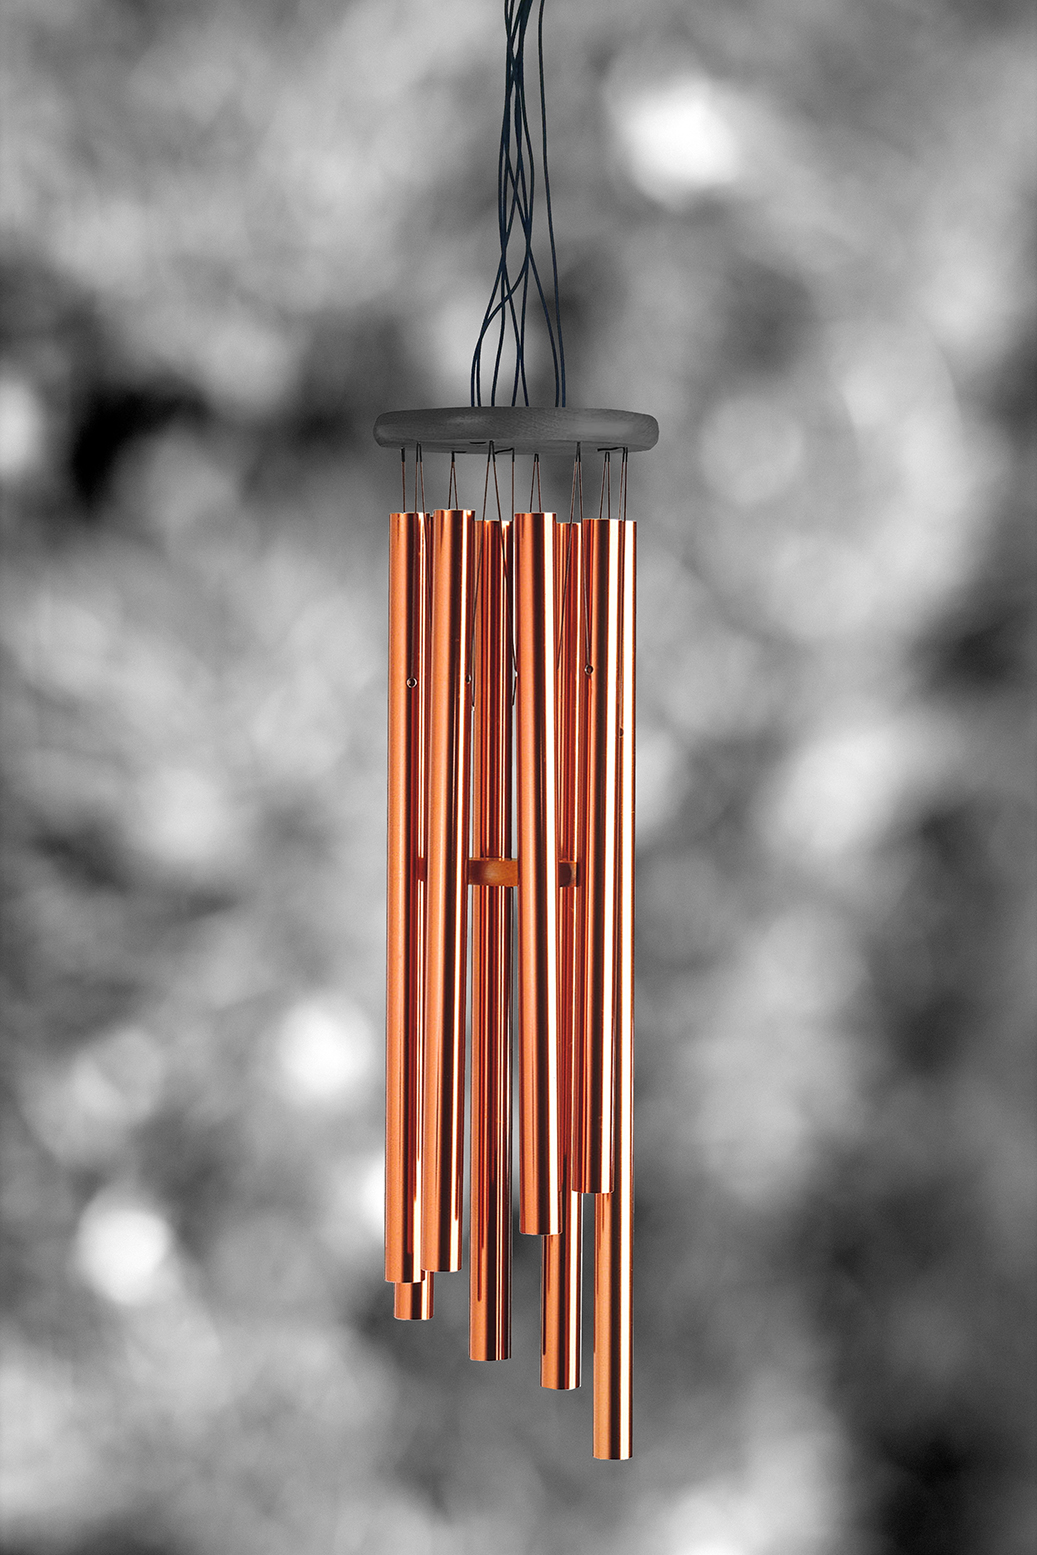 U201cWind Chimesu201d Is A Multichannel, Wind Powered Sound Installation Composed  For Prepared Copper Wind Chimes And Custom Electronics.